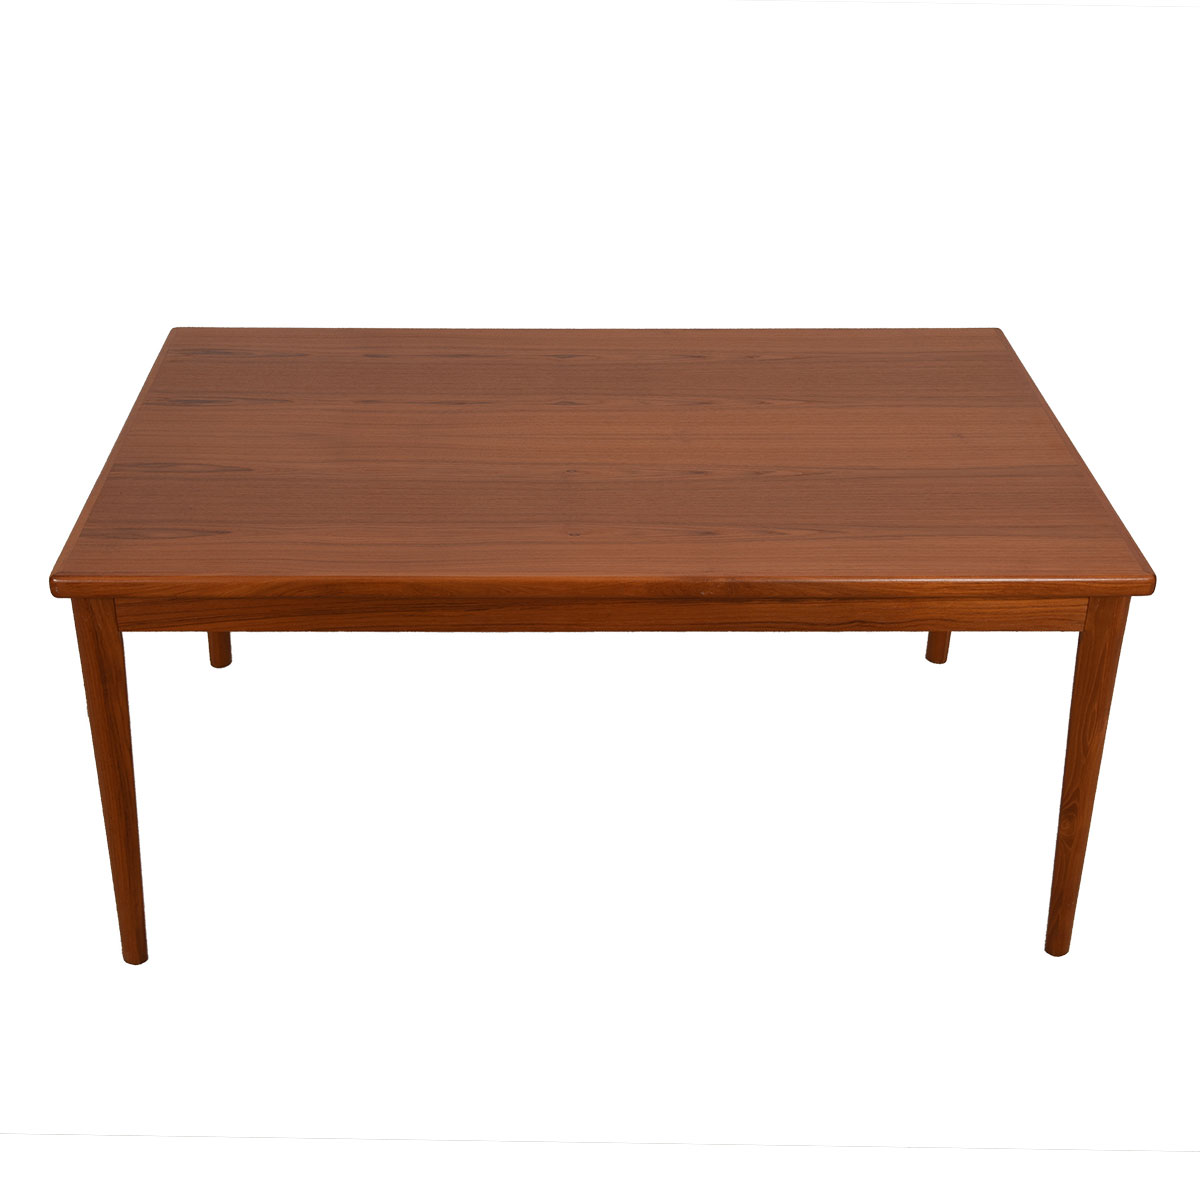 Mid-Sized to Large Danish Modern Teak Expanding Dining Table